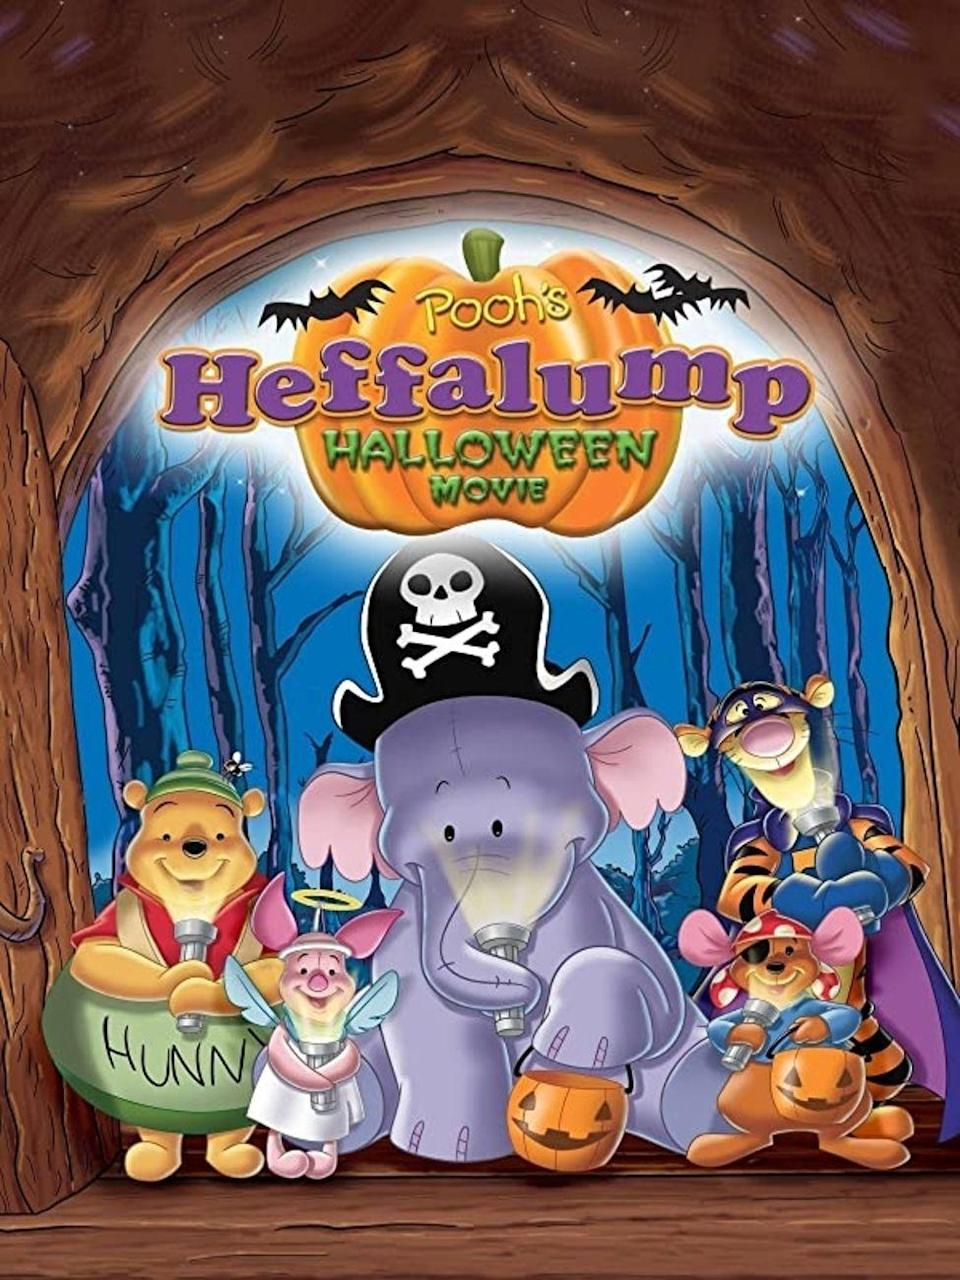 """<p>Who doesn't love Winnie The Pooh? A perfect halloween flick for the little one because they can join Pooh and his pals on a spooky adventure in the Hundred Acre Woods.<br></p><p><a class=""""link rapid-noclick-resp"""" href=""""https://www.amazon.com/dp/B012H6JYR4?linkCode=ogi&tag=syn-yahoo-20&ascsubtag=%5Bartid%7C10055.g.33651563%5Bsrc%7Cyahoo-us"""" rel=""""nofollow noopener"""" target=""""_blank"""" data-ylk=""""slk:WATCH NOW"""">WATCH NOW</a></p>"""